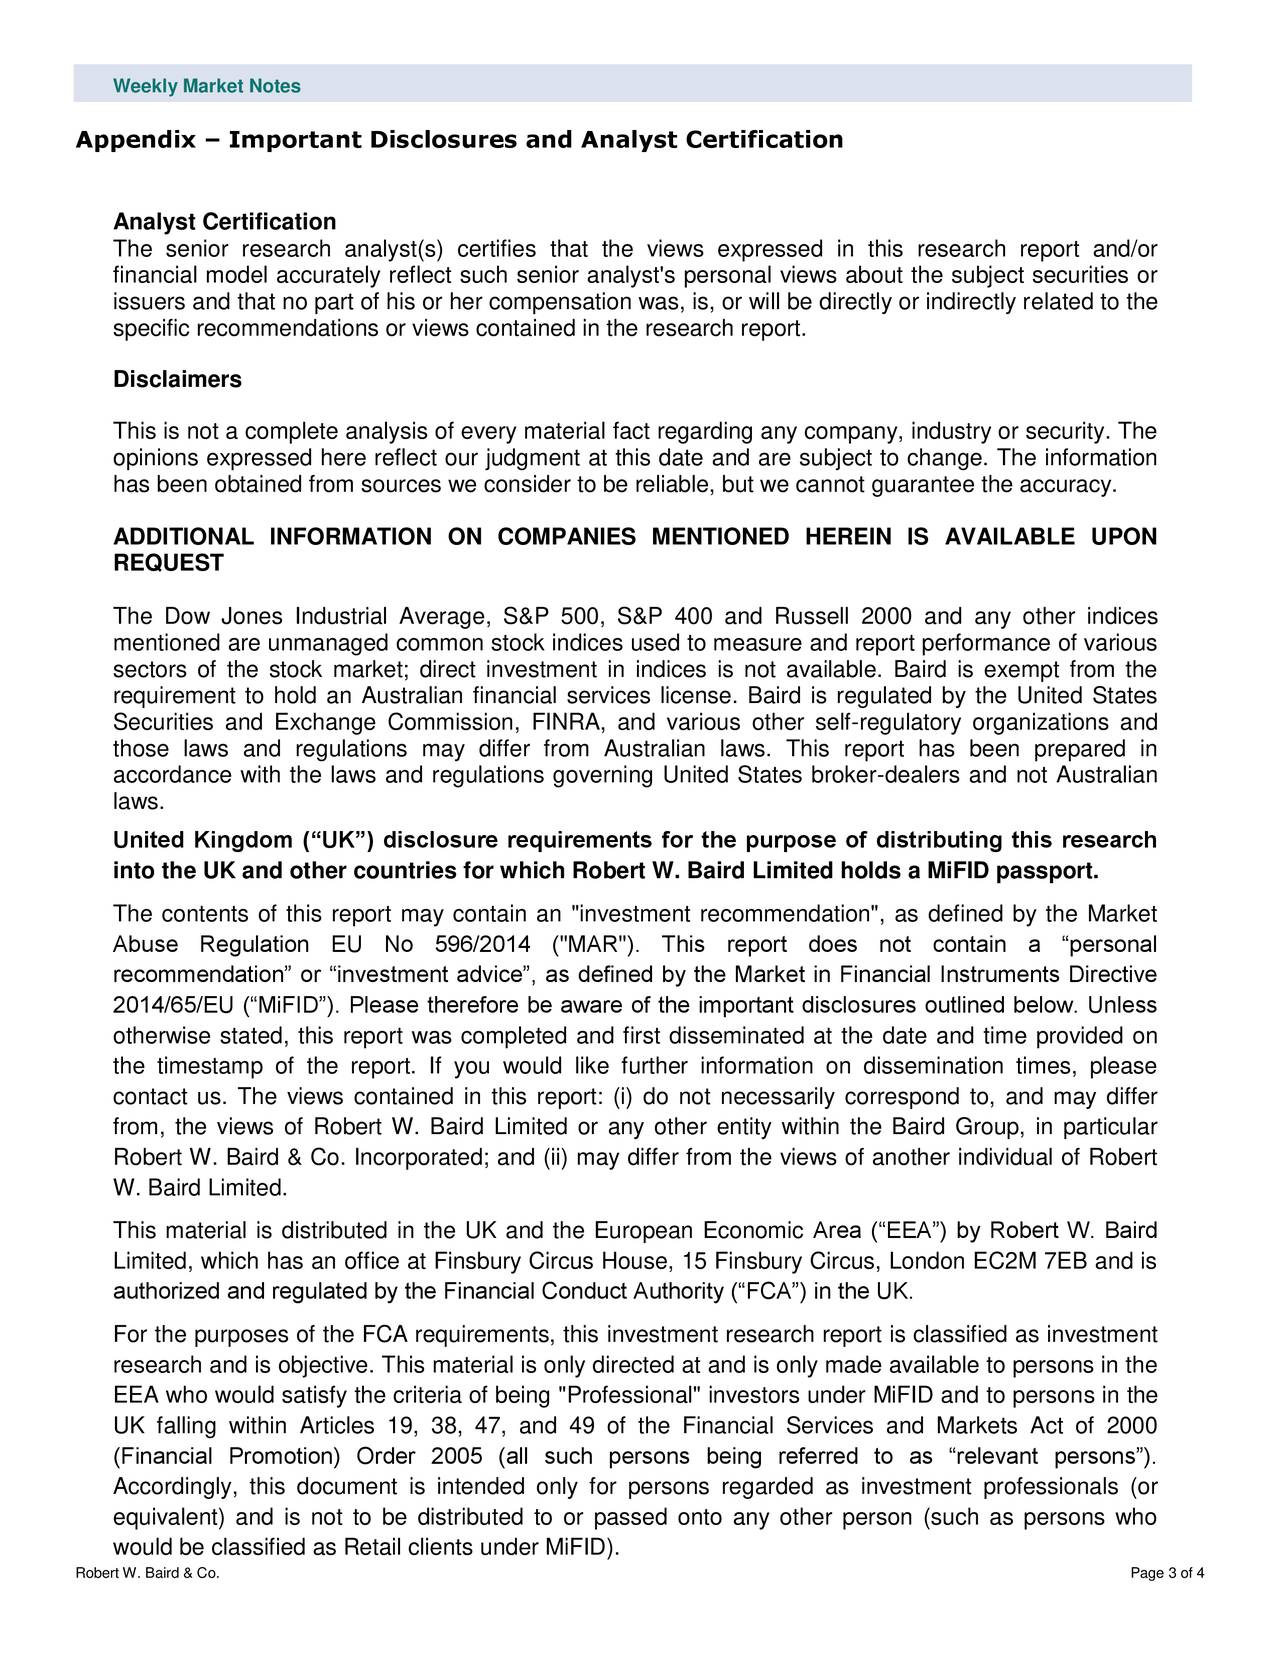 """Appendix – Important Disclosures and Analyst Certification Analyst Certification The senior research analyst(s) certifies that the views expressed in this research report and/or financial model accurately reflect such senior analyst's personal views about the subject securities or issuers and that no part of his or her compensation was, is, or will be directly or indirectly related to the specific recommendations or views contained in the research report. Disclaimers This is not a complete analysis of every material fact regarding any company, industry or security. The opinions expressed here reflect our judgment at this date and are subject to change. The information has been obtained from sources we consider to be reliable, but we cannot guarantee the accuracy. ADDITIONAL INFORMATION ON COMPANIES MENTIONED HEREIN IS AVAILABLE UPON REQUEST The Dow Jones Industrial Average, S&P 500, S&P 400 and Russell 2000 and any other indices mentioned are unmanaged common stock indices used to measure and report performance of various sectors of the stock market; direct investment in indices is not available. Baird is exempt from the requirement to hold an Australian financial services license. Baird is regulated by the United States Securities and Exchange Commission, FINRA, and various other self-regulatory organizations and those laws and regulations may differ from Australian laws. This report has been prepared in accordance with the laws and regulations governing United States broker-dealers and not Australian laws. United Kingdom (""""UK"""") disclosure requirements for the purpose of distributing this research into the UK and other countries for which Robert W. Baird Limited holds a MiFID passport. The contents of this report may contain an """"investment recommendation"""", as defined by the Market Abuse Regulation EU No 596/2014 (""""MAR""""). This report does not contain a """"personal recommendation"""" or """"investment advice"""", as defined by the Market in Financial Instruments Directive 2014/"""